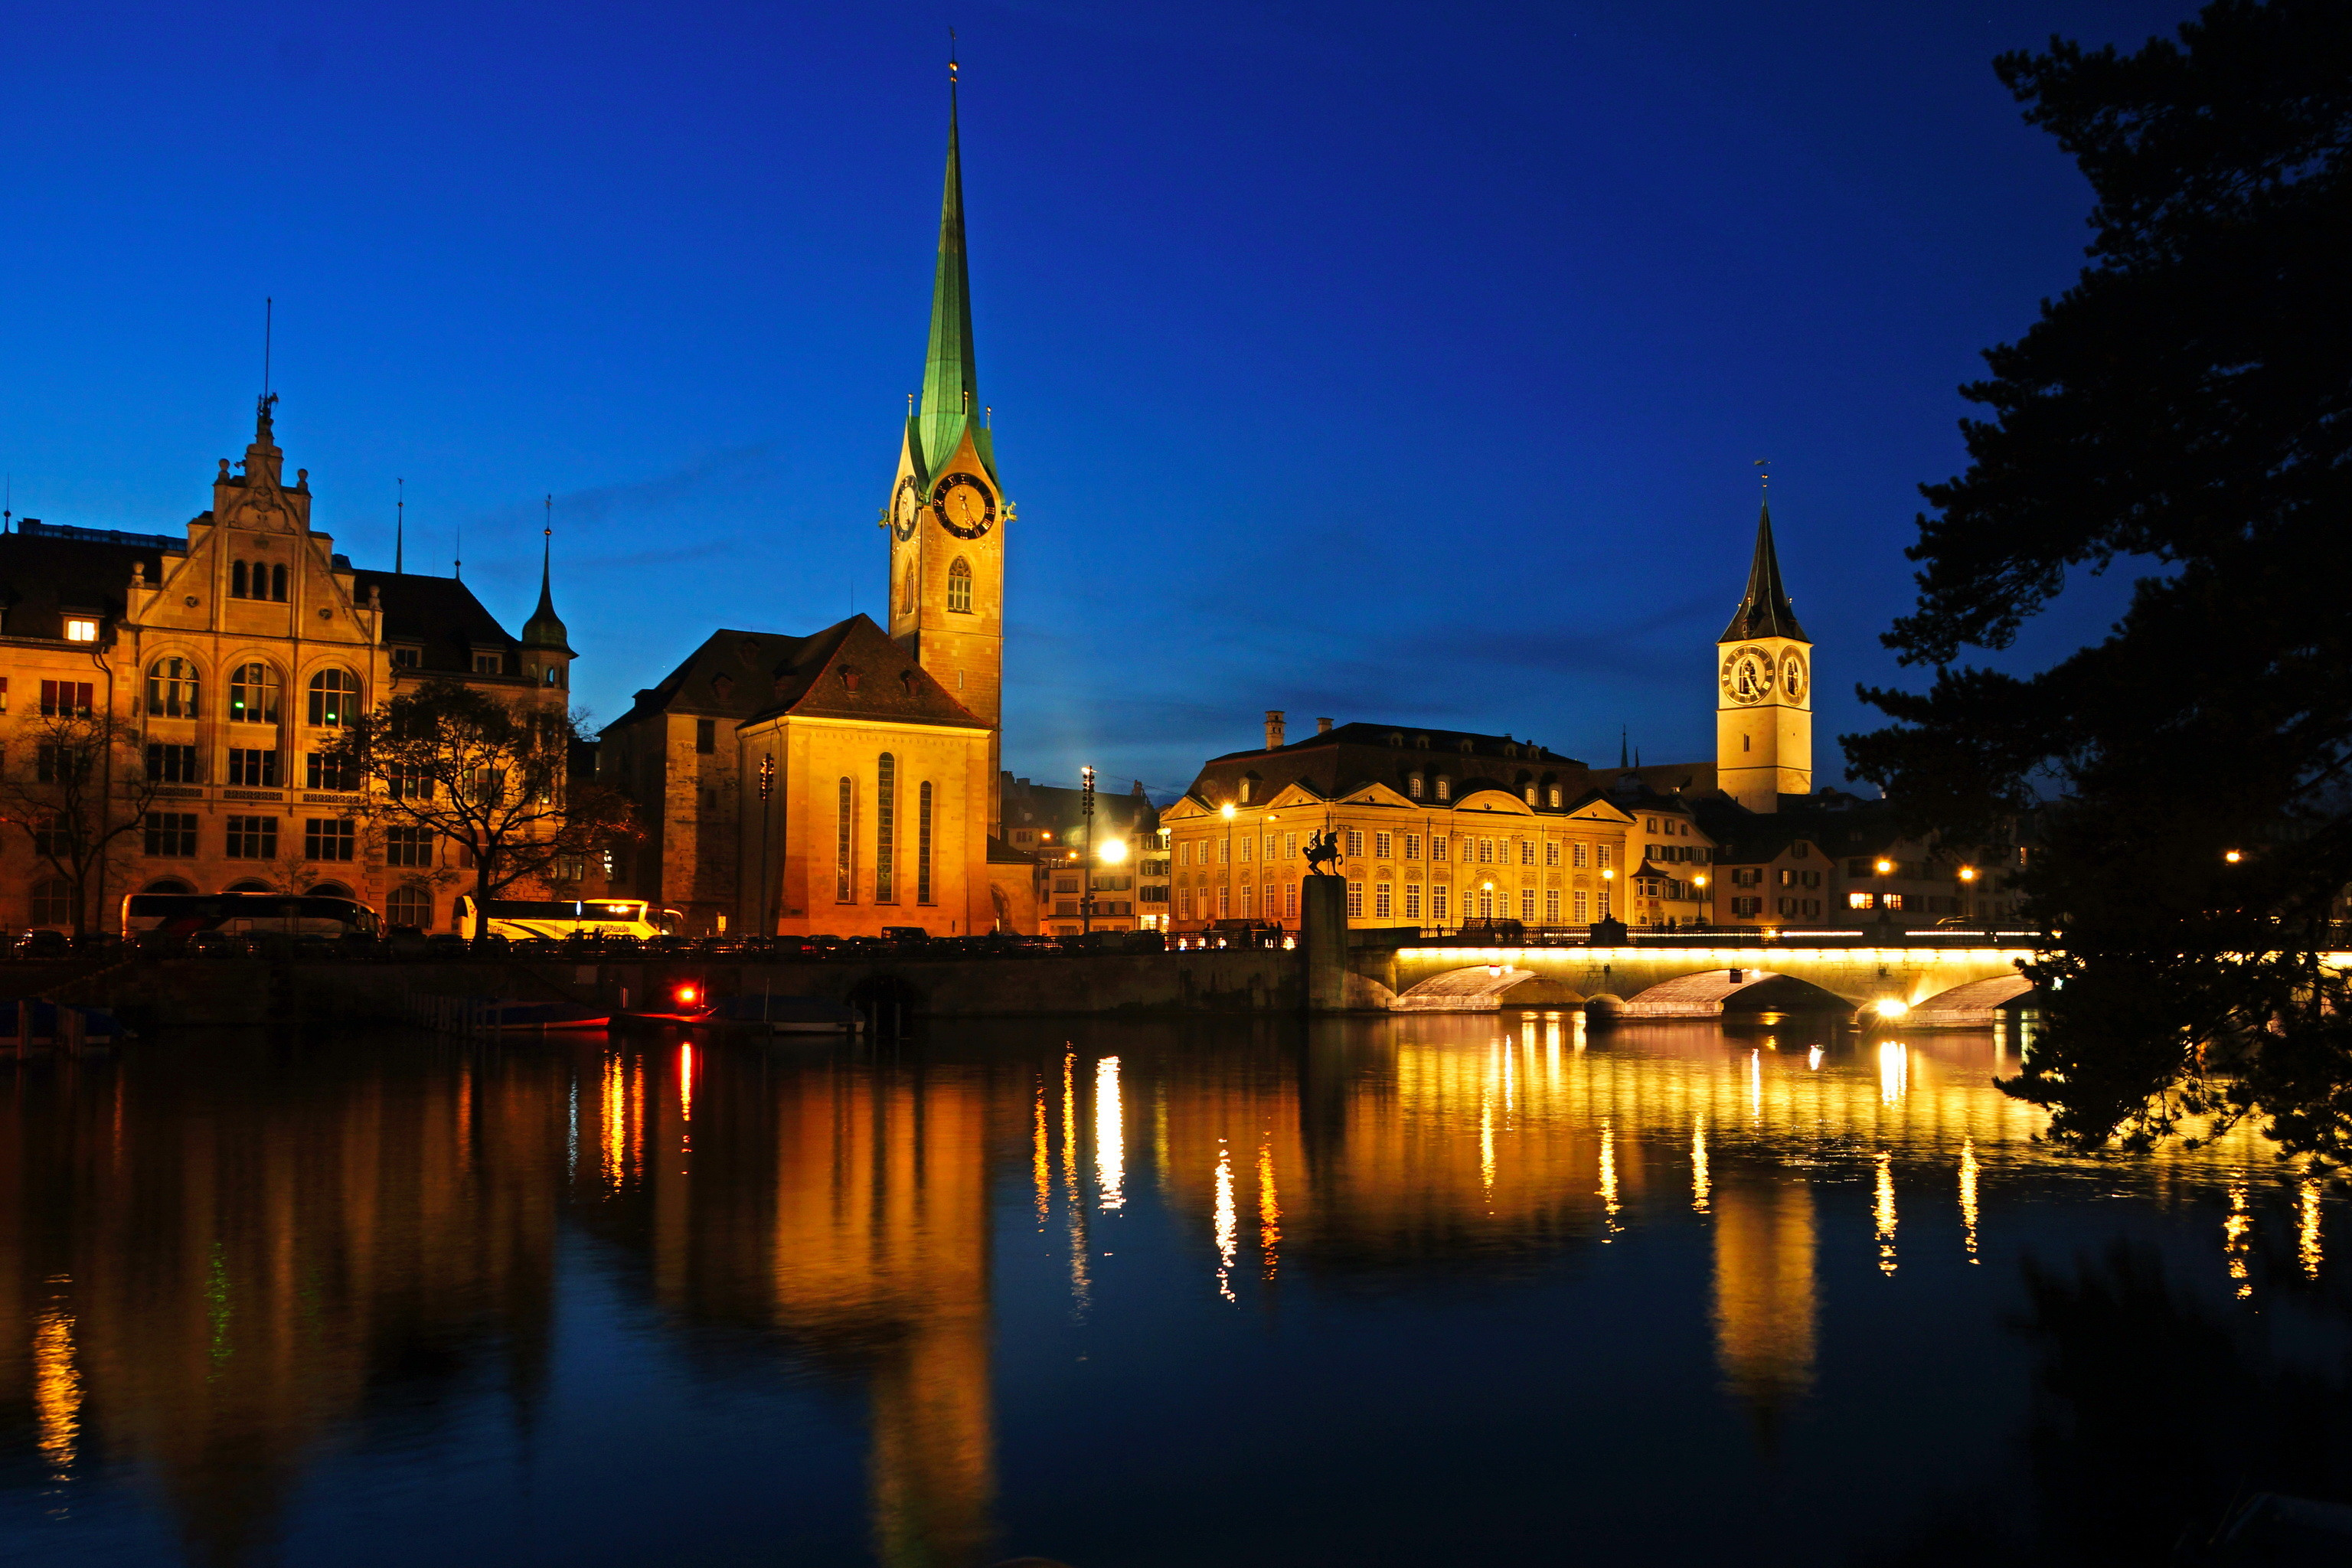 Wallpapers Zurich Switzerland Rivers night time Cities Night